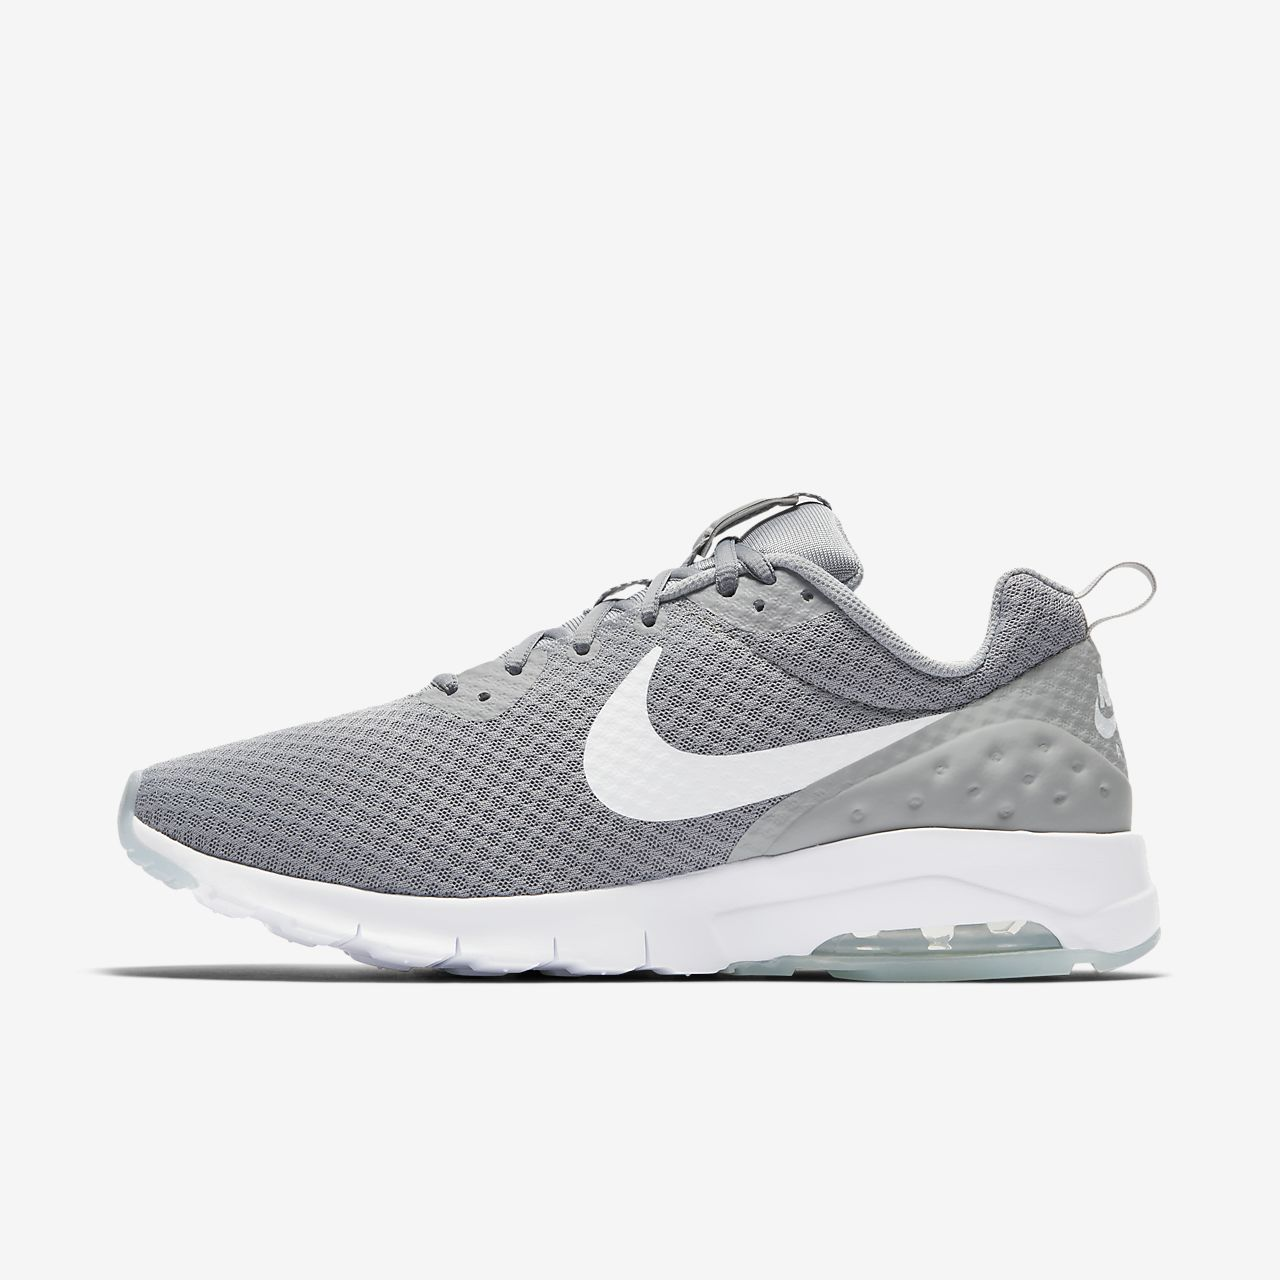 big sale 05c4f 0c059 ... Calzado para hombre Nike Air Max Motion Low